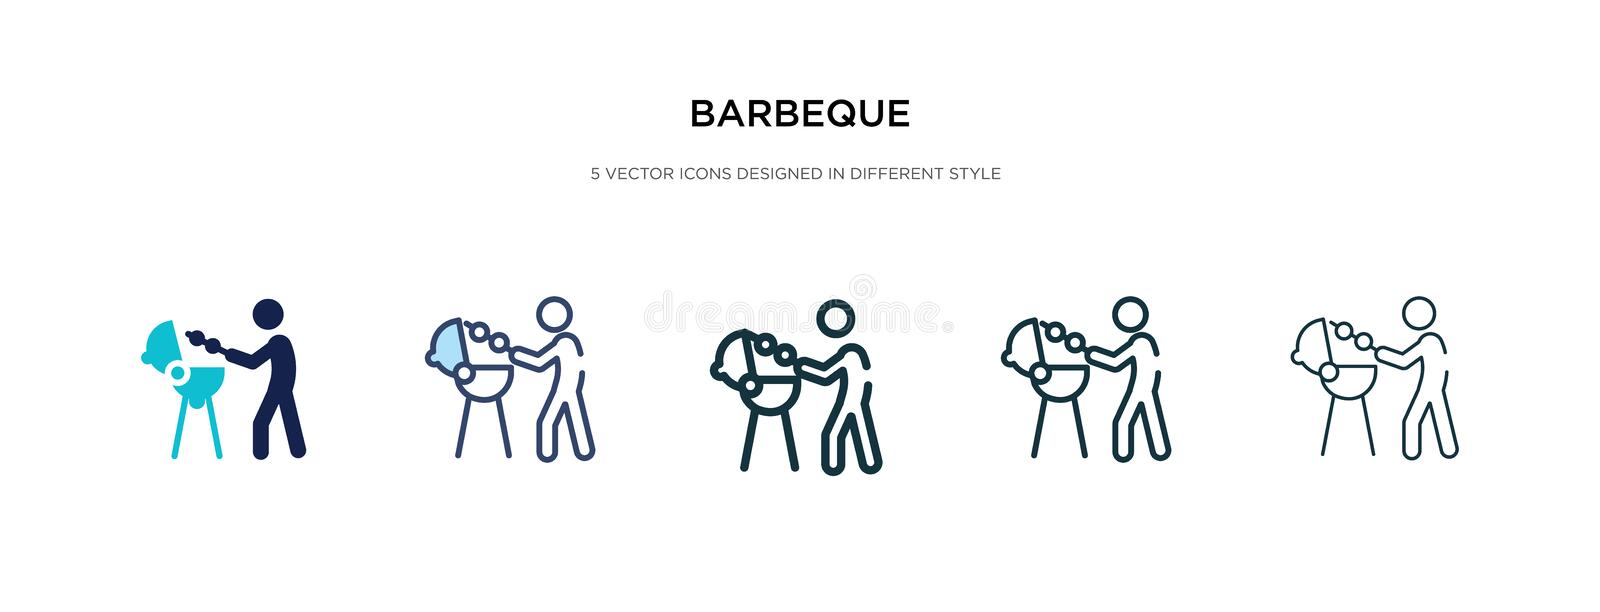 Barbeque icon in different style vector illustration. two colored and black barbeque vector icons designed in filled, outline, stock illustration